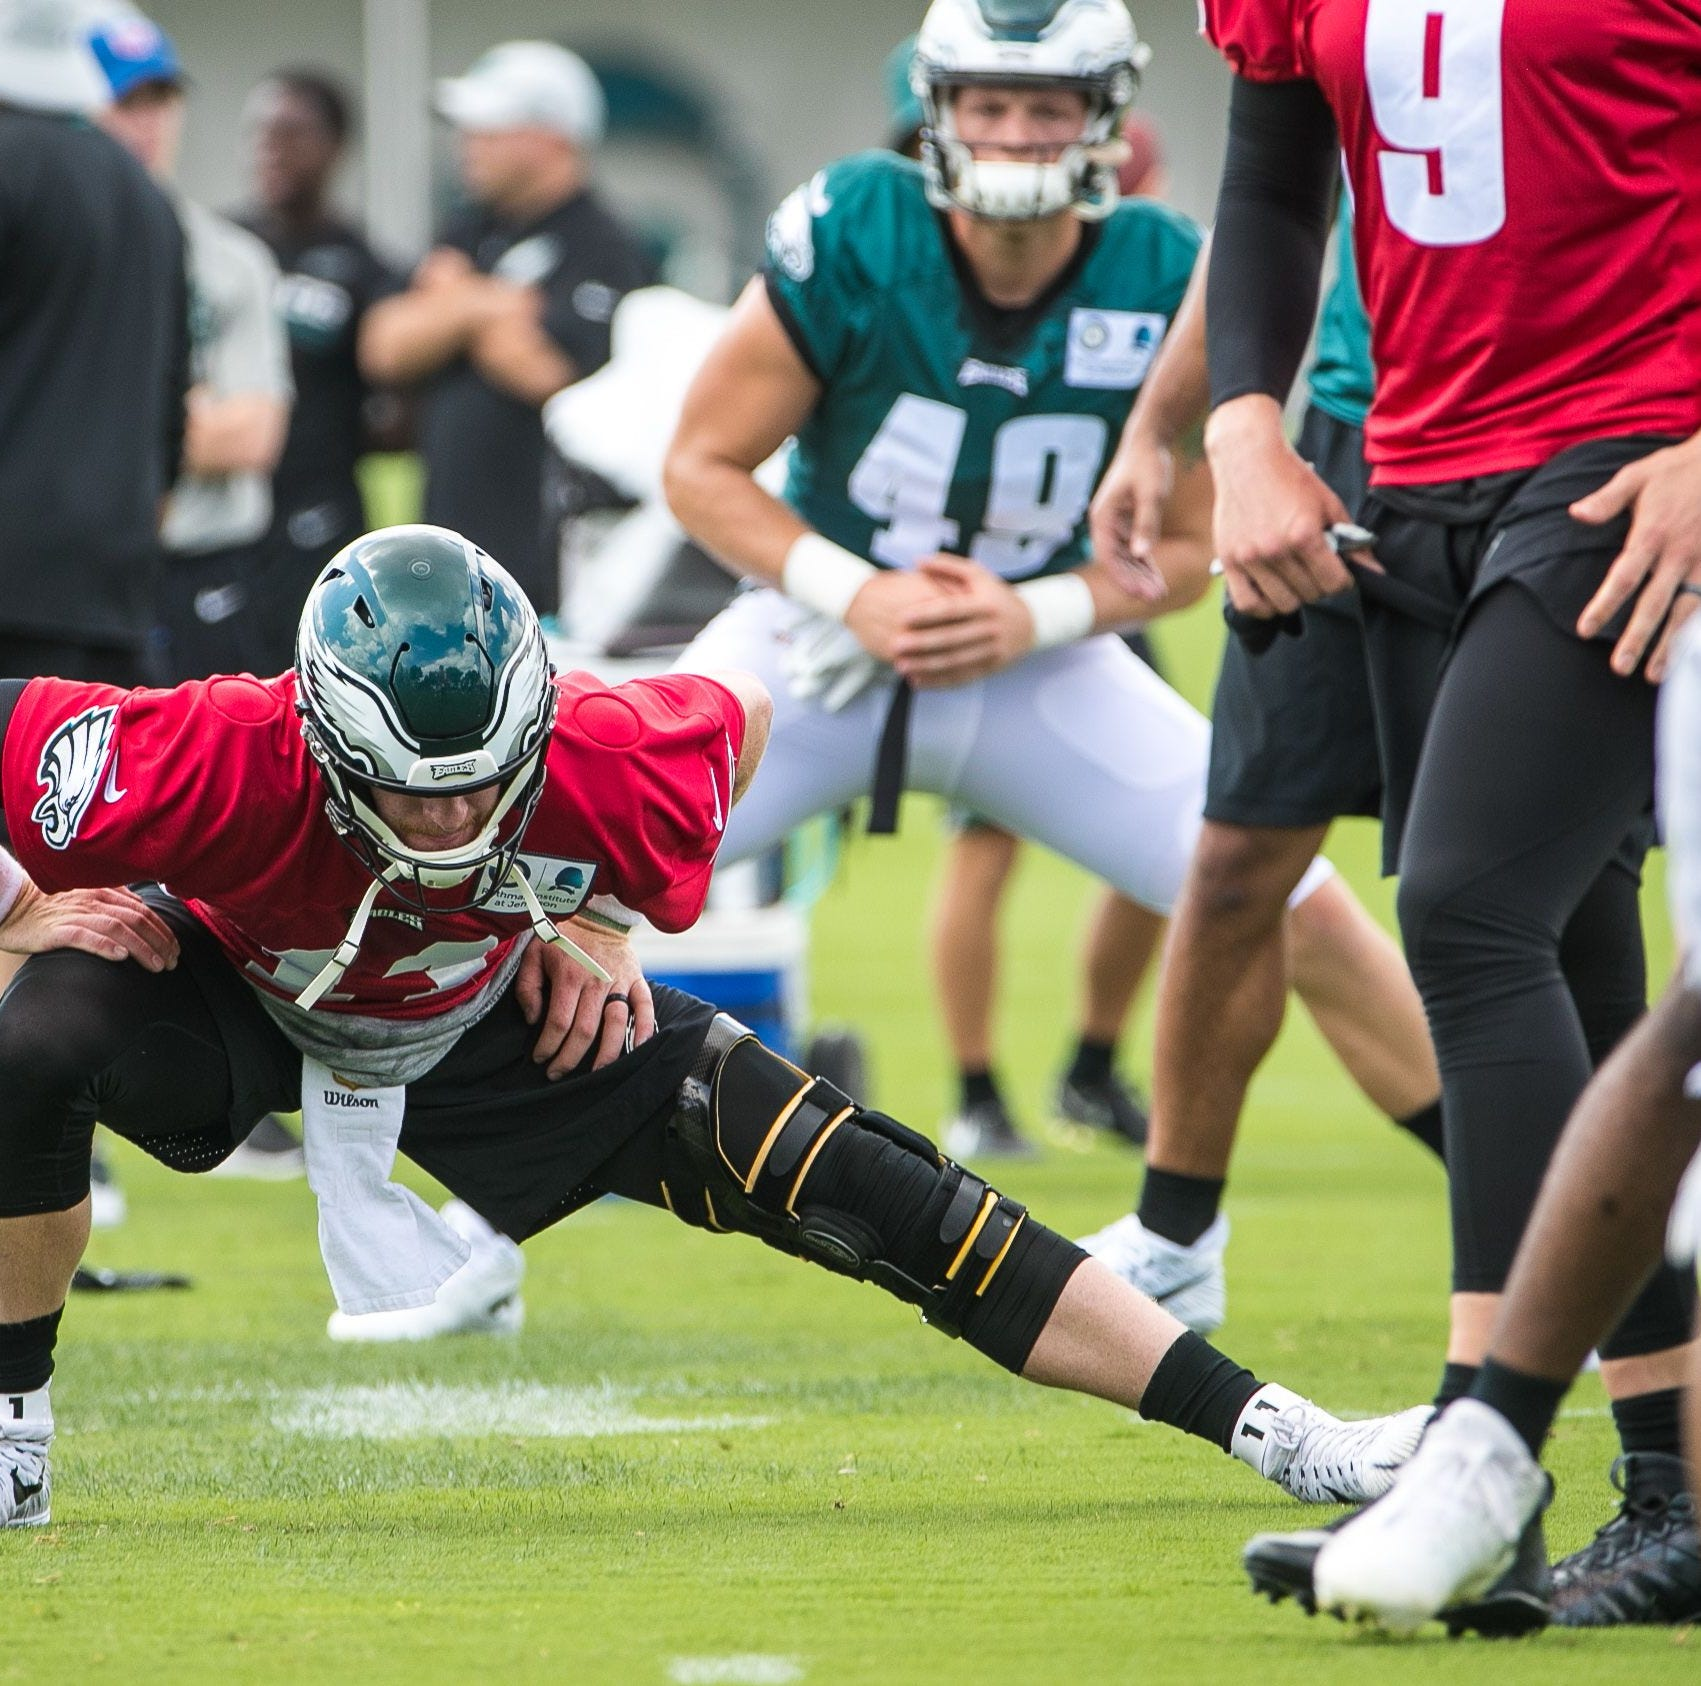 Philadelphia Eagles camp: Carson Wentz explains sitting out 11-on-11 drills